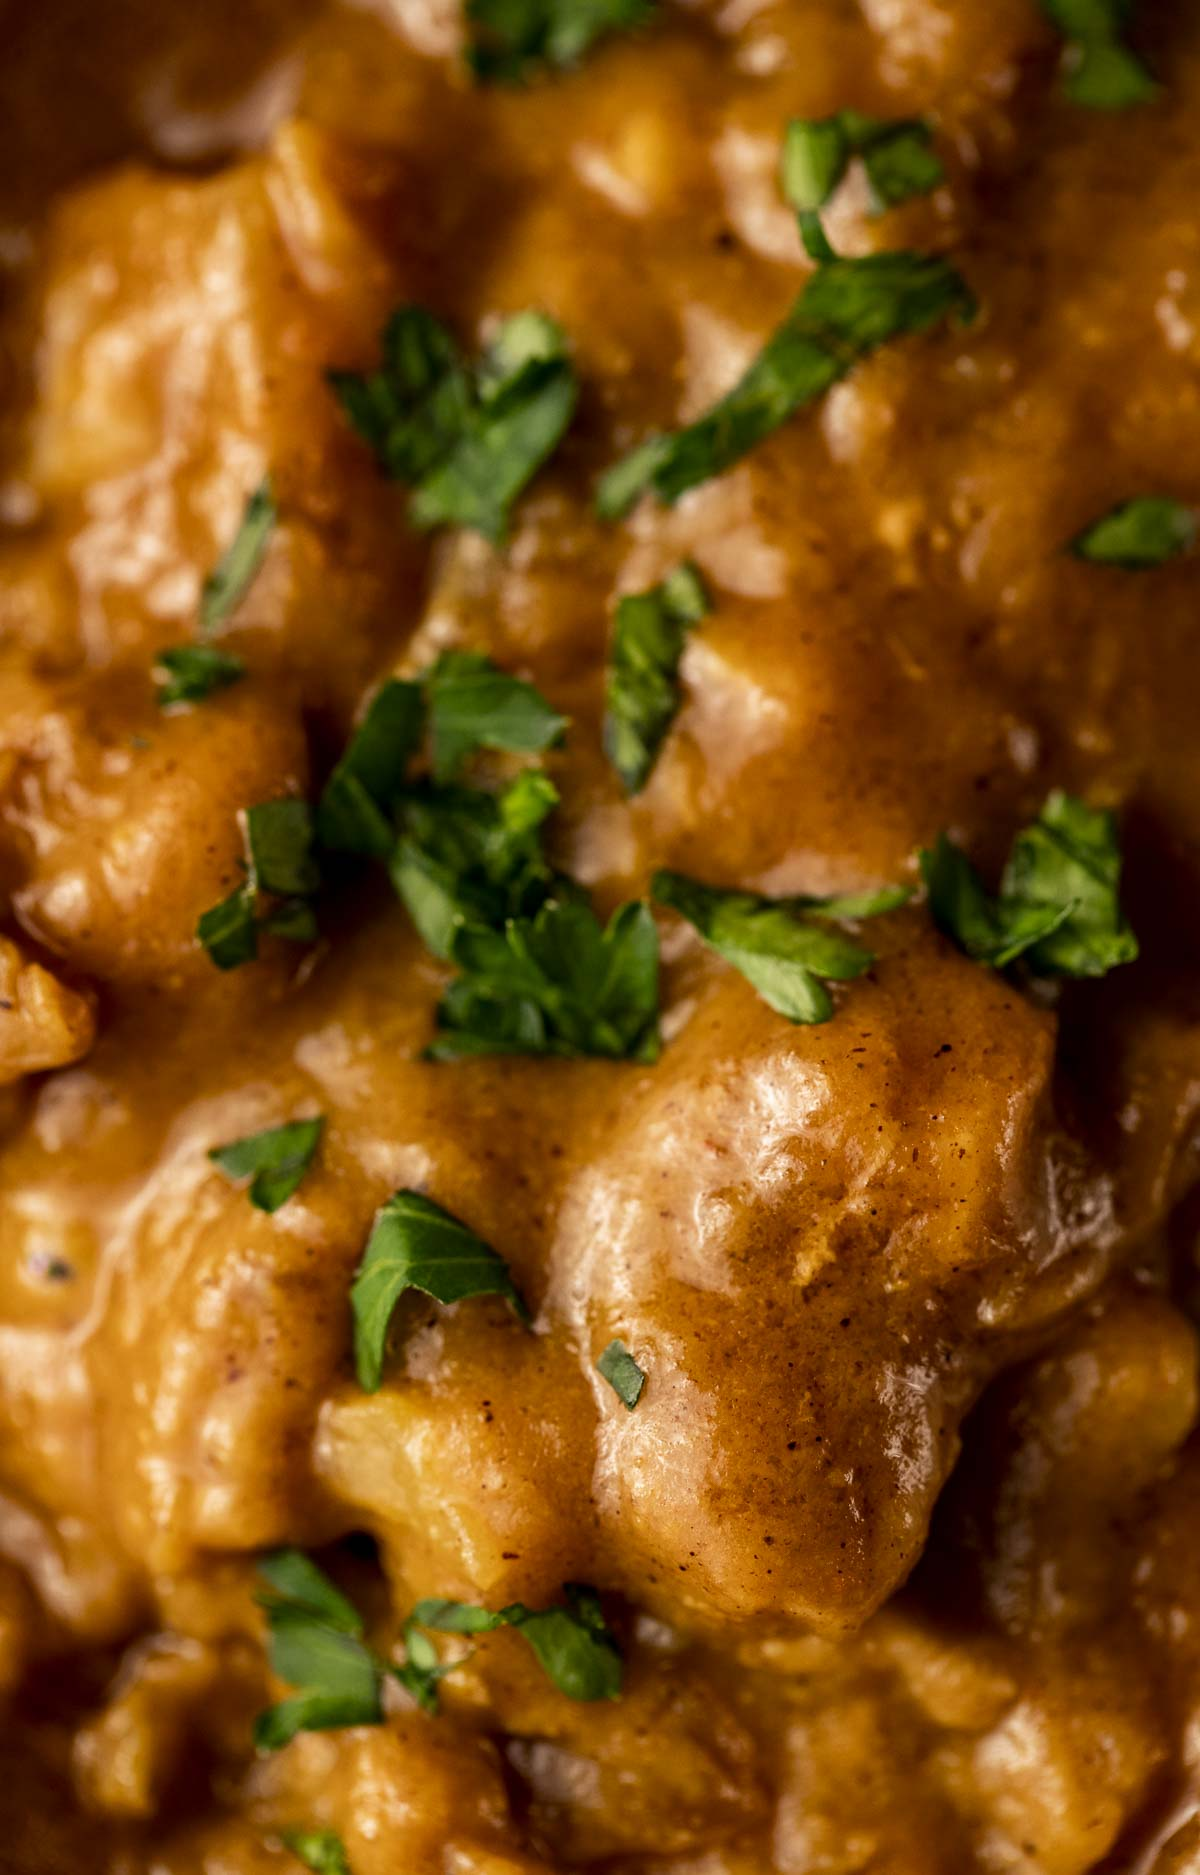 close up photo of chicken and vegetables in an orange sauce